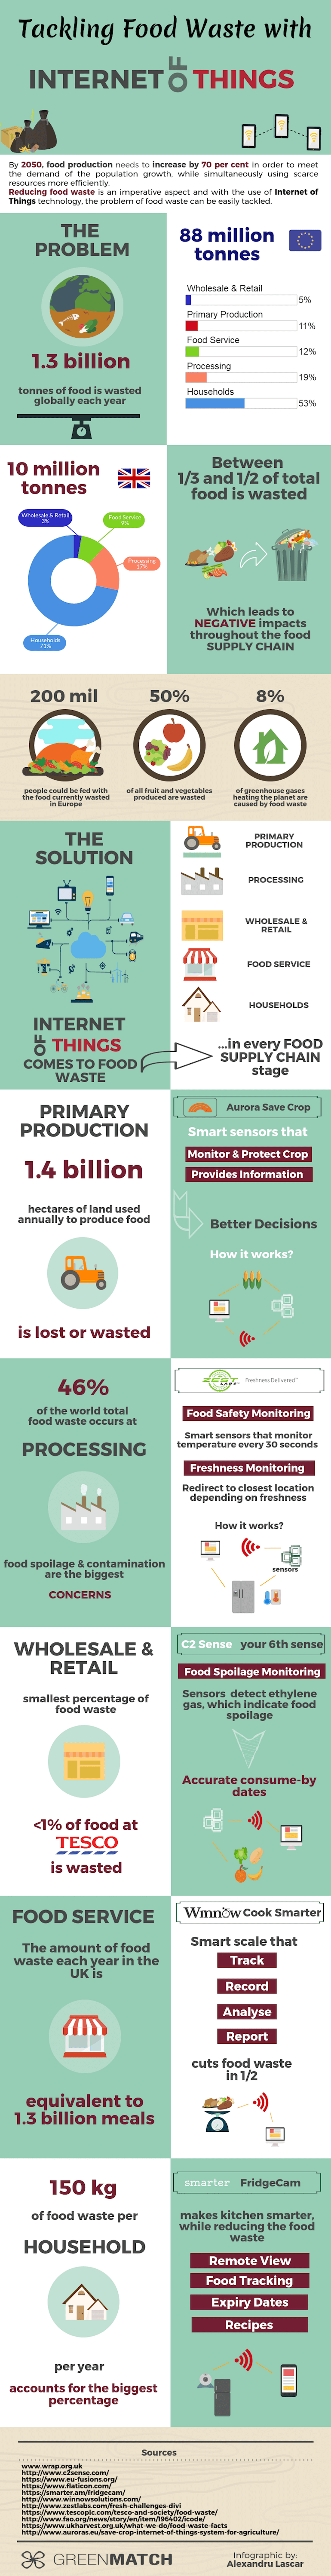 Infographic about tackling food waste with IoT